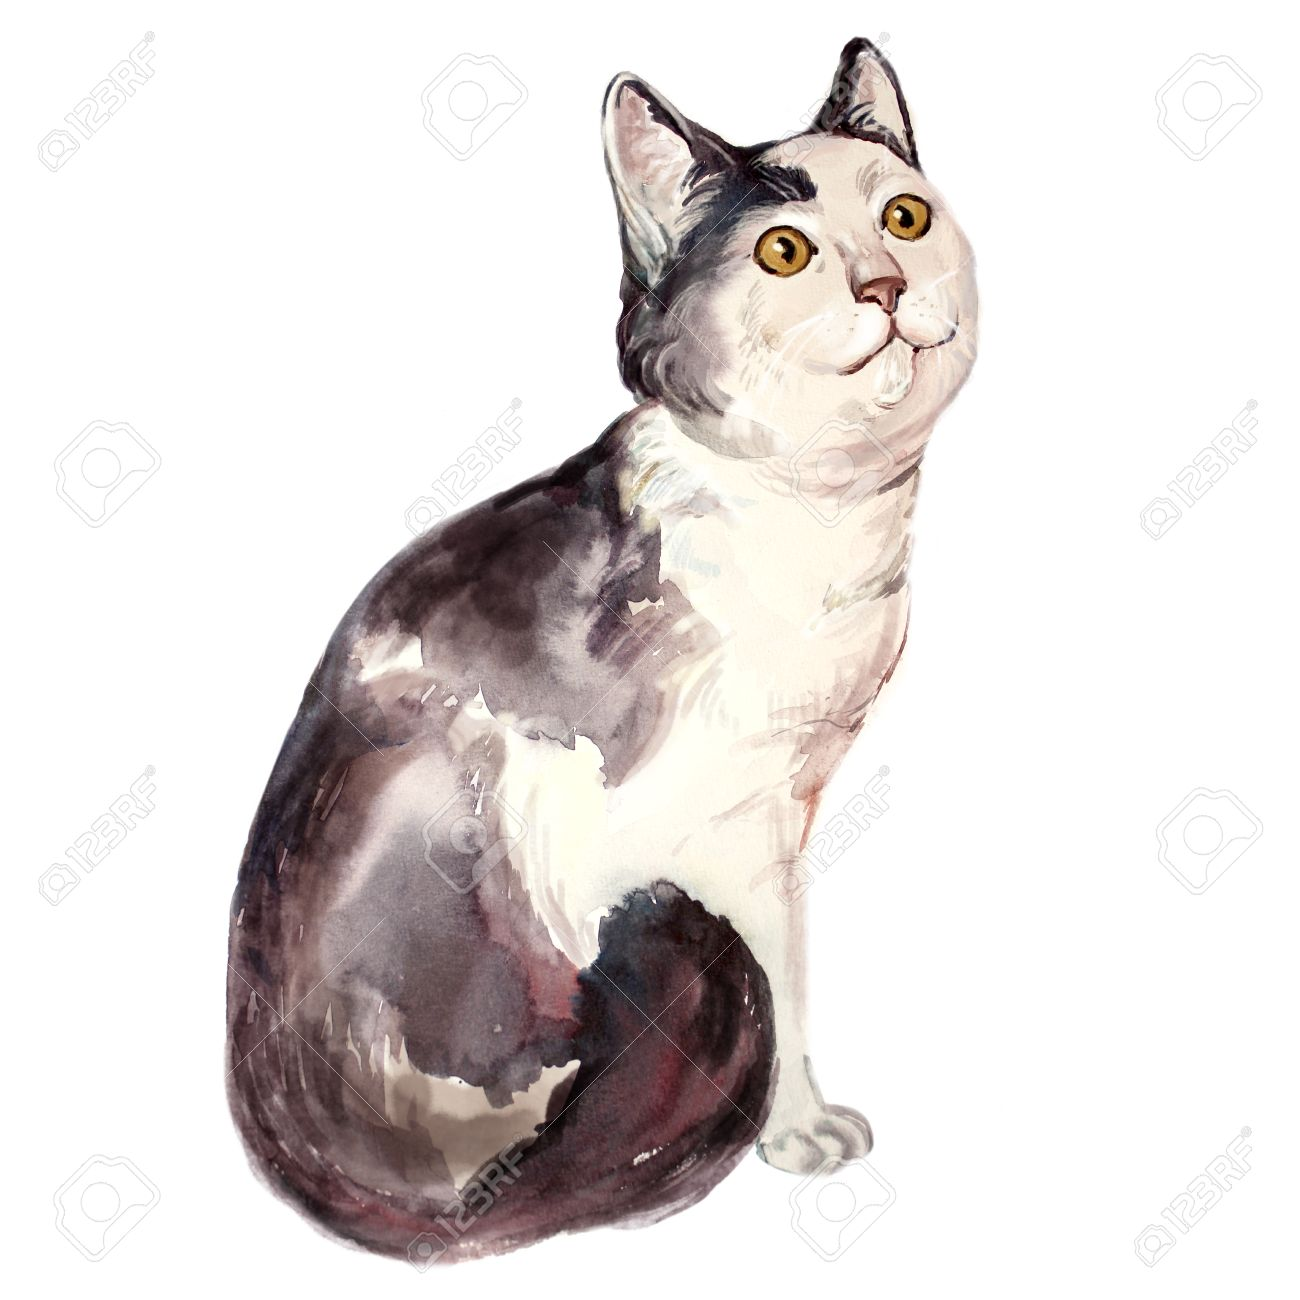 Watercolor Illustration Of Ugly Cat Looking Confused Dumb Face Stock Photo Picture And Royalty Free Image Image 53505876